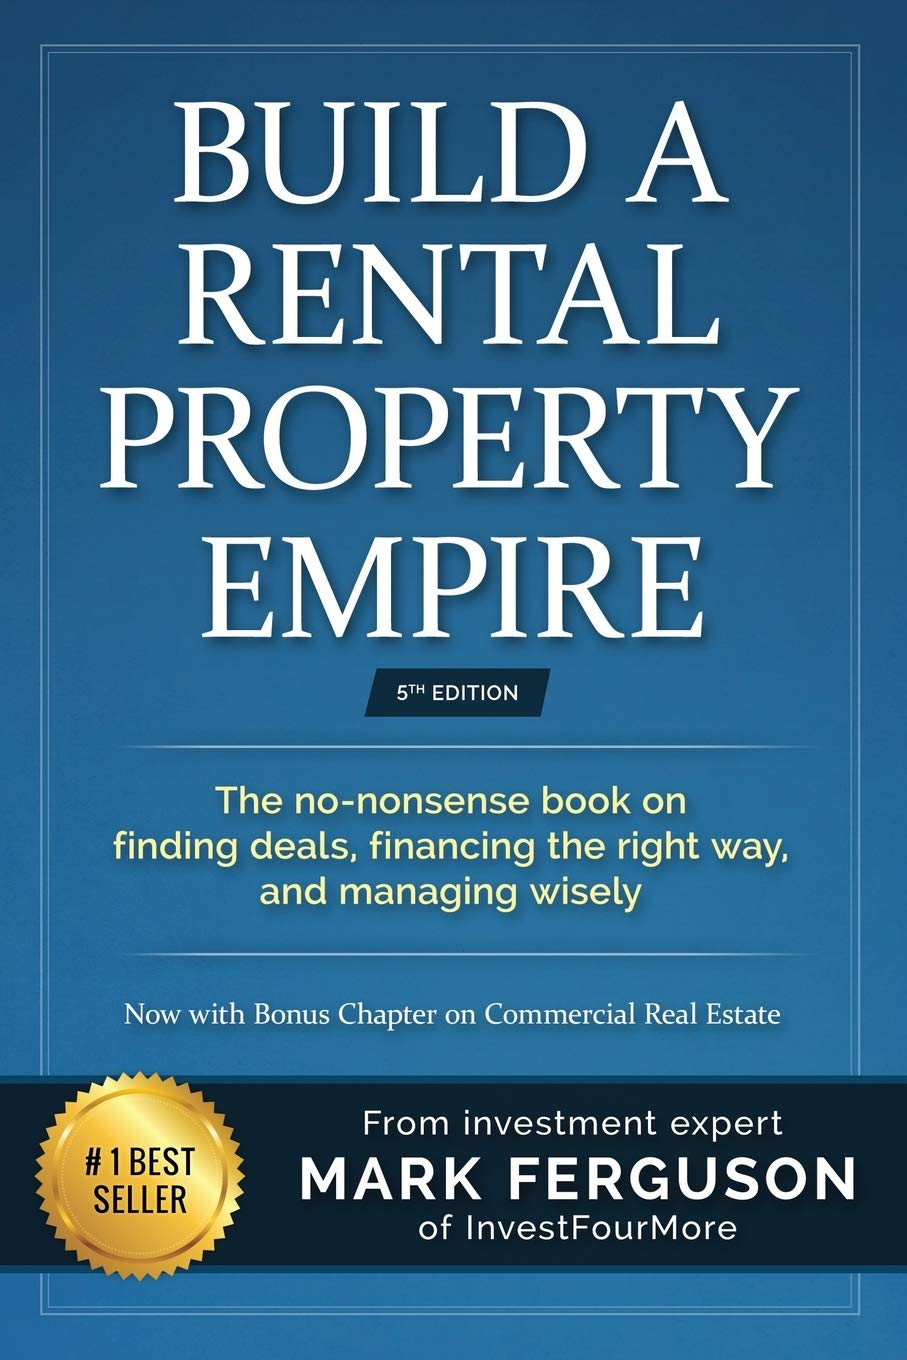 Build a Rental Property Empire: The no-nonsense book, on finding deals, financing, the right way, and managing wisely. - Tolerant Planet